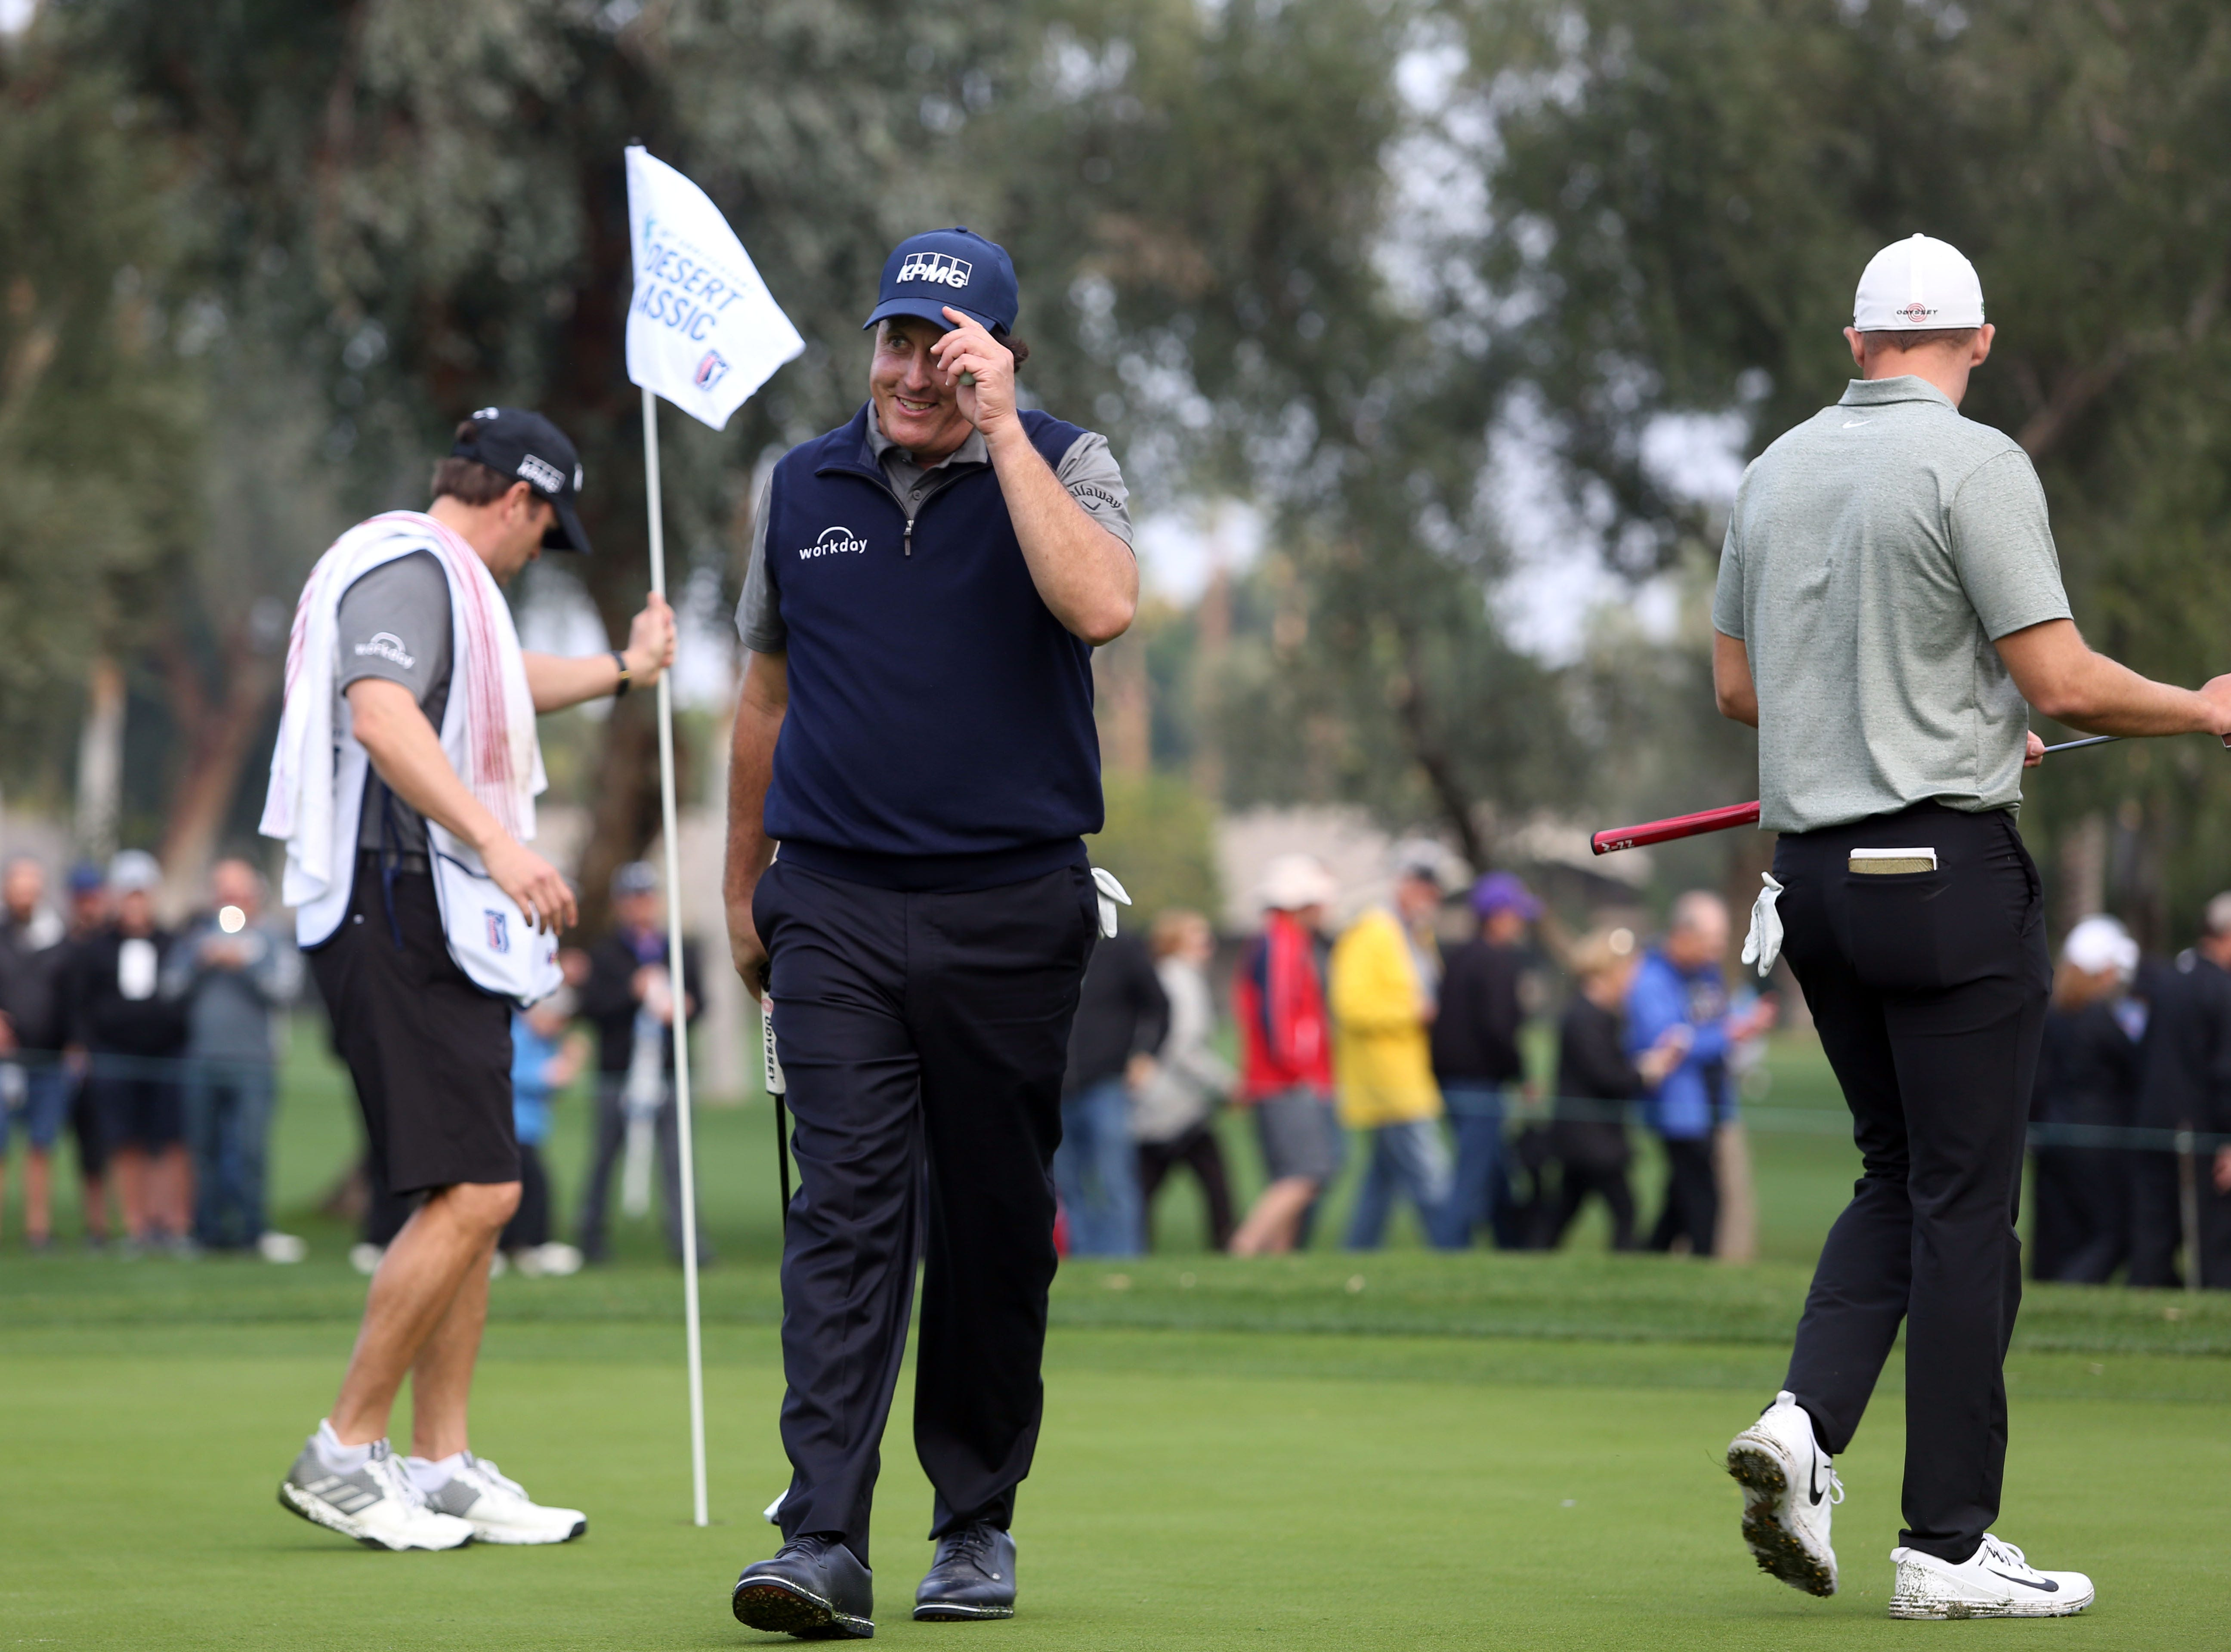 Phil Mickelson tips his cap after he birdies 1 at La Quinta County Club during the 1st round of the Desert Classic on Thursday, January 17, 2019. Mickelson leads at the end of the day with 12 under.